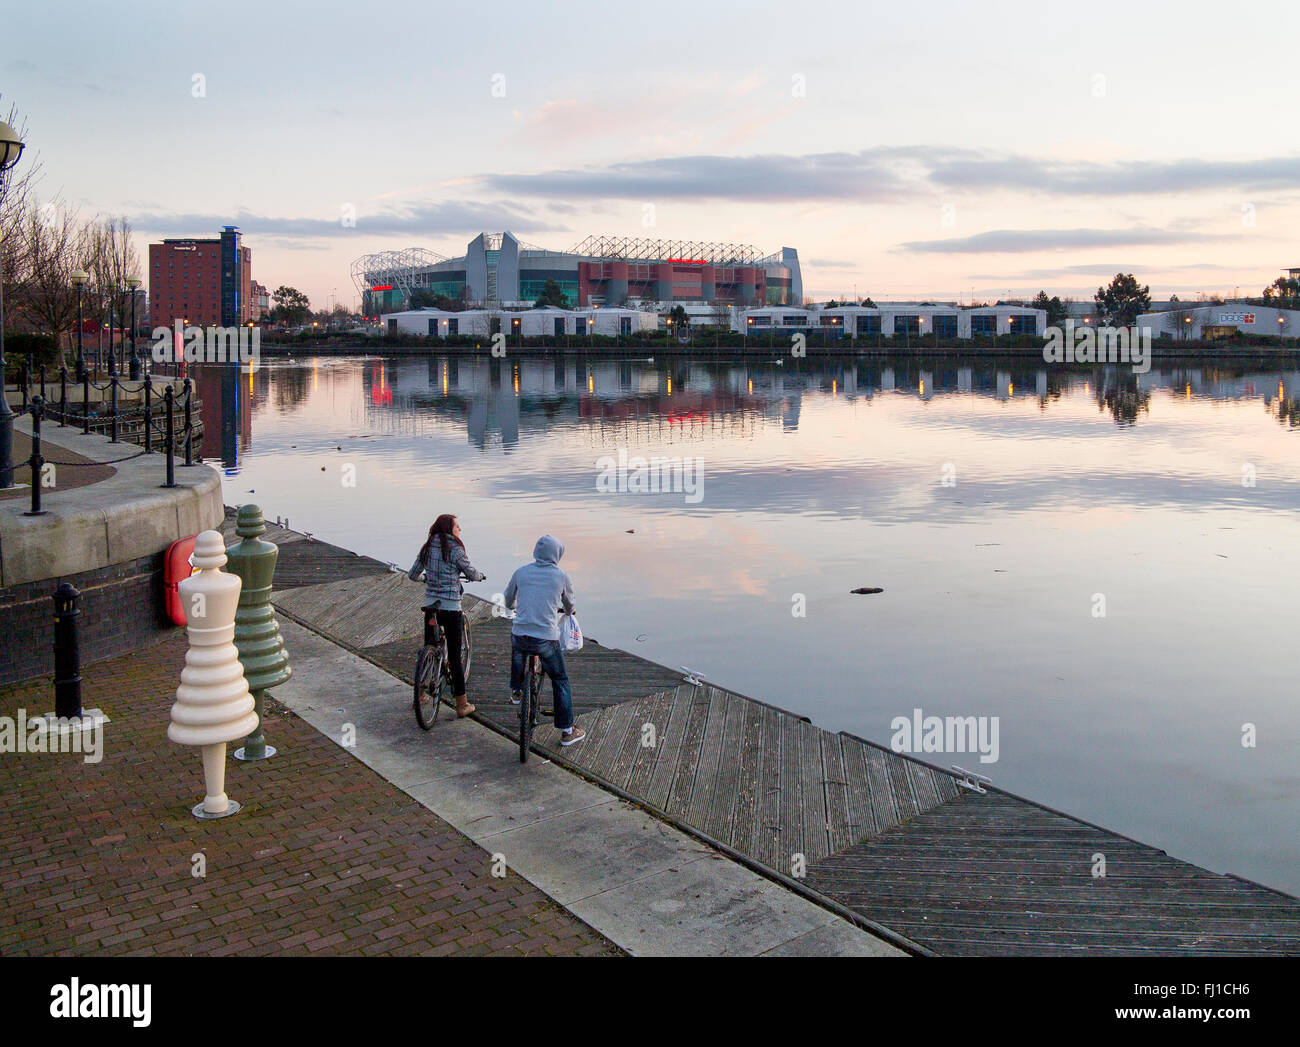 Two youths on bikes, a boy and a girl, view Old Trafford stadium, home of Manchester United Football Club, from - Stock Image